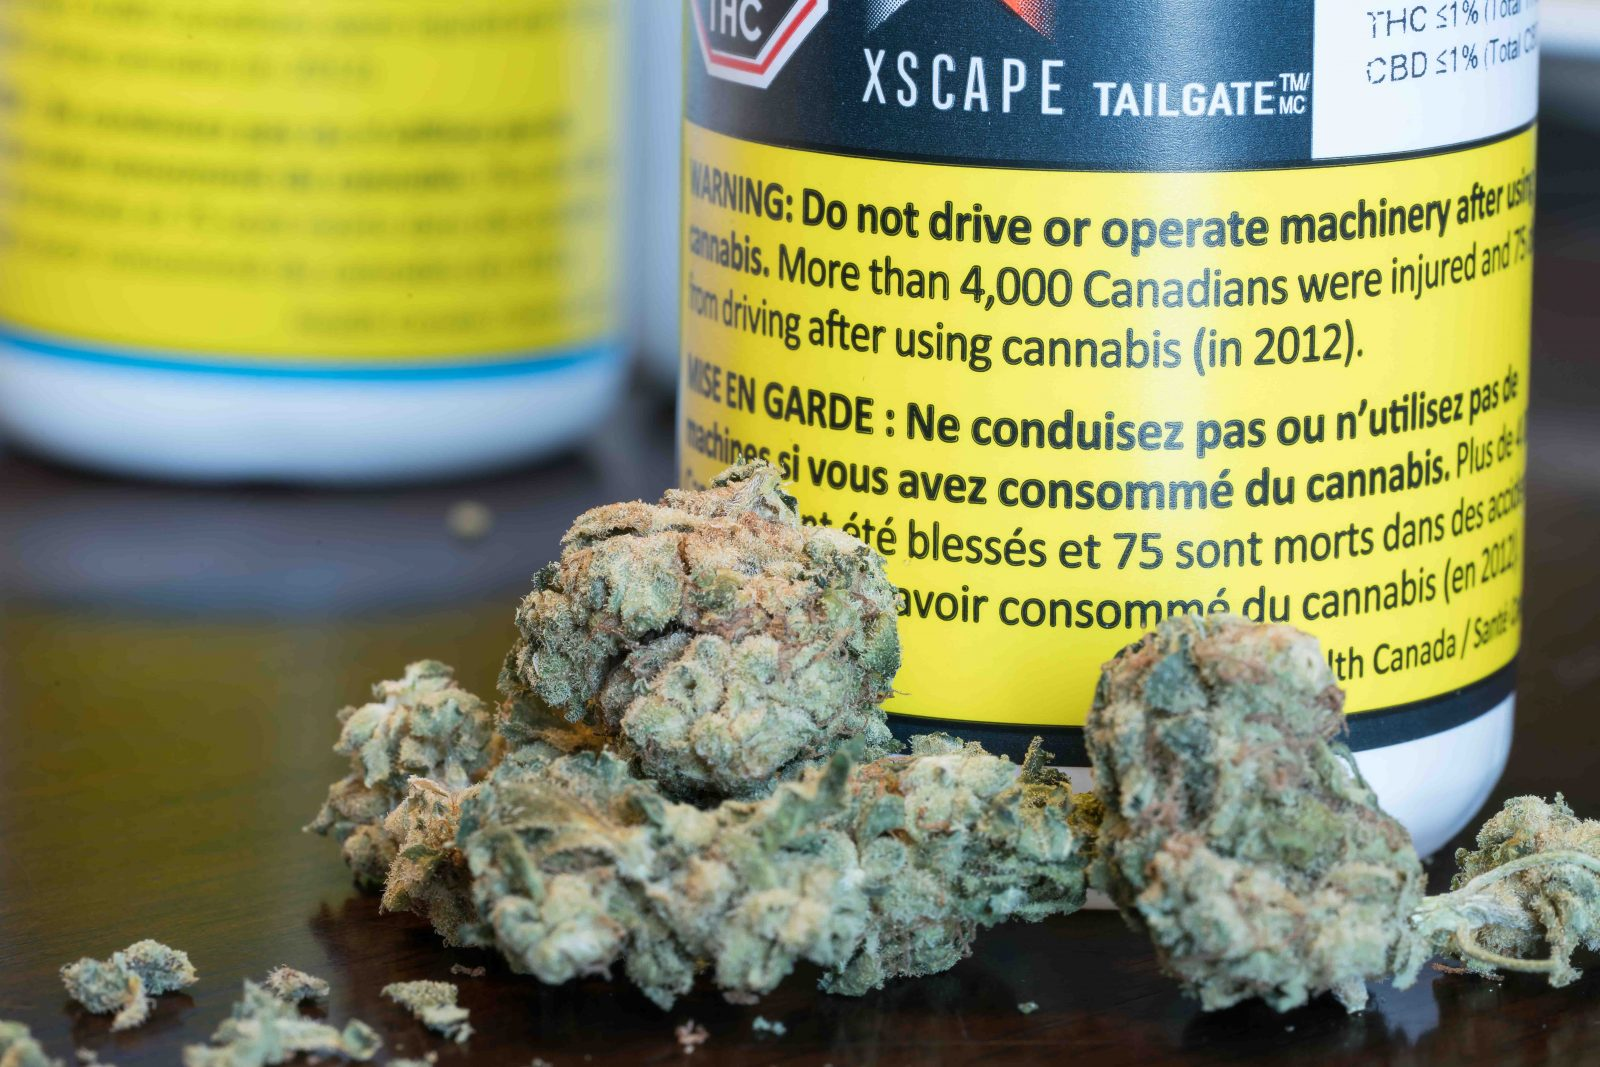 Diesel (Tailgate) by CannTrust (Xscape)